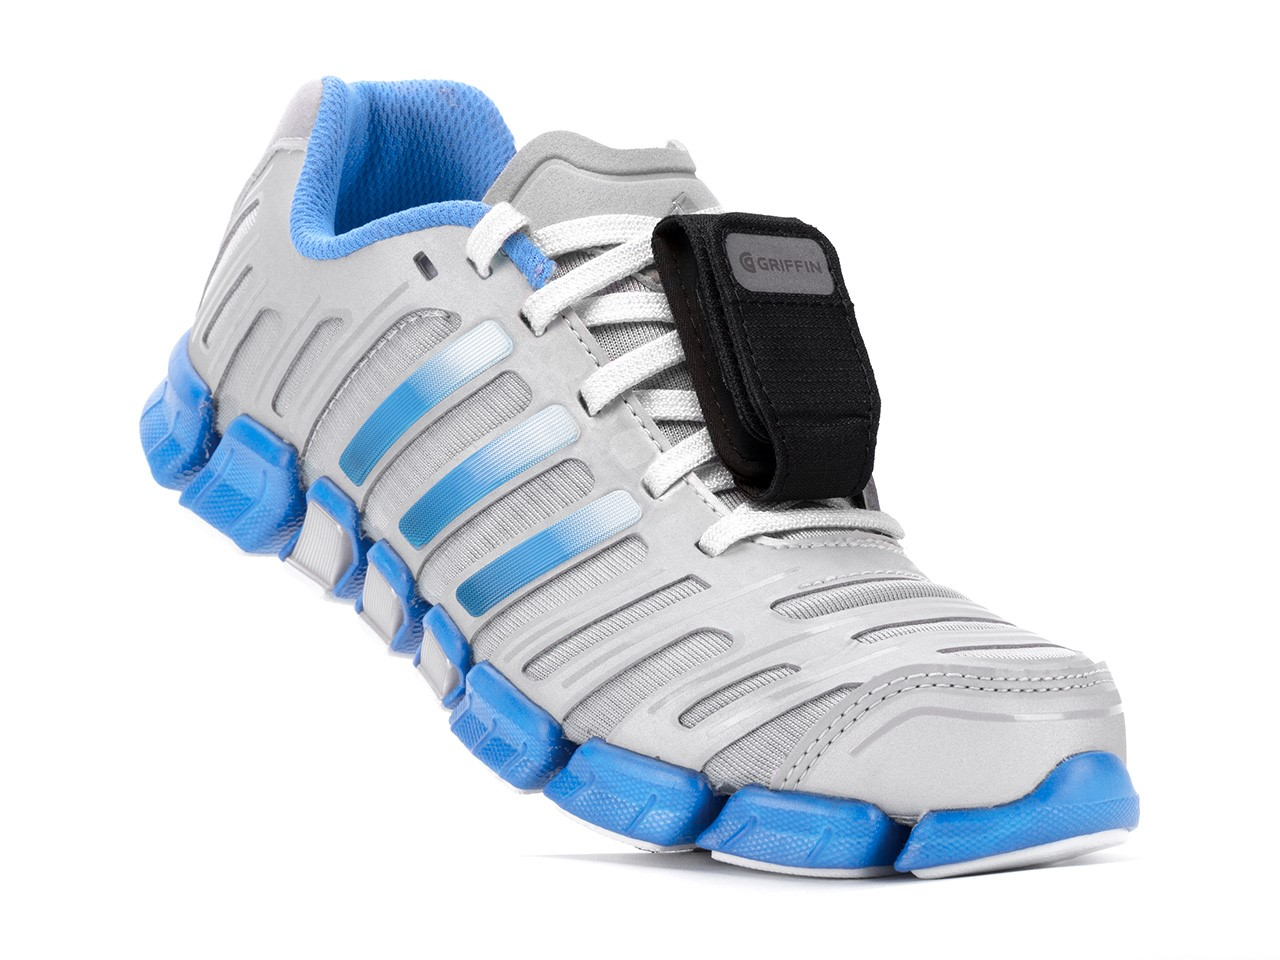 Fitbit shoes